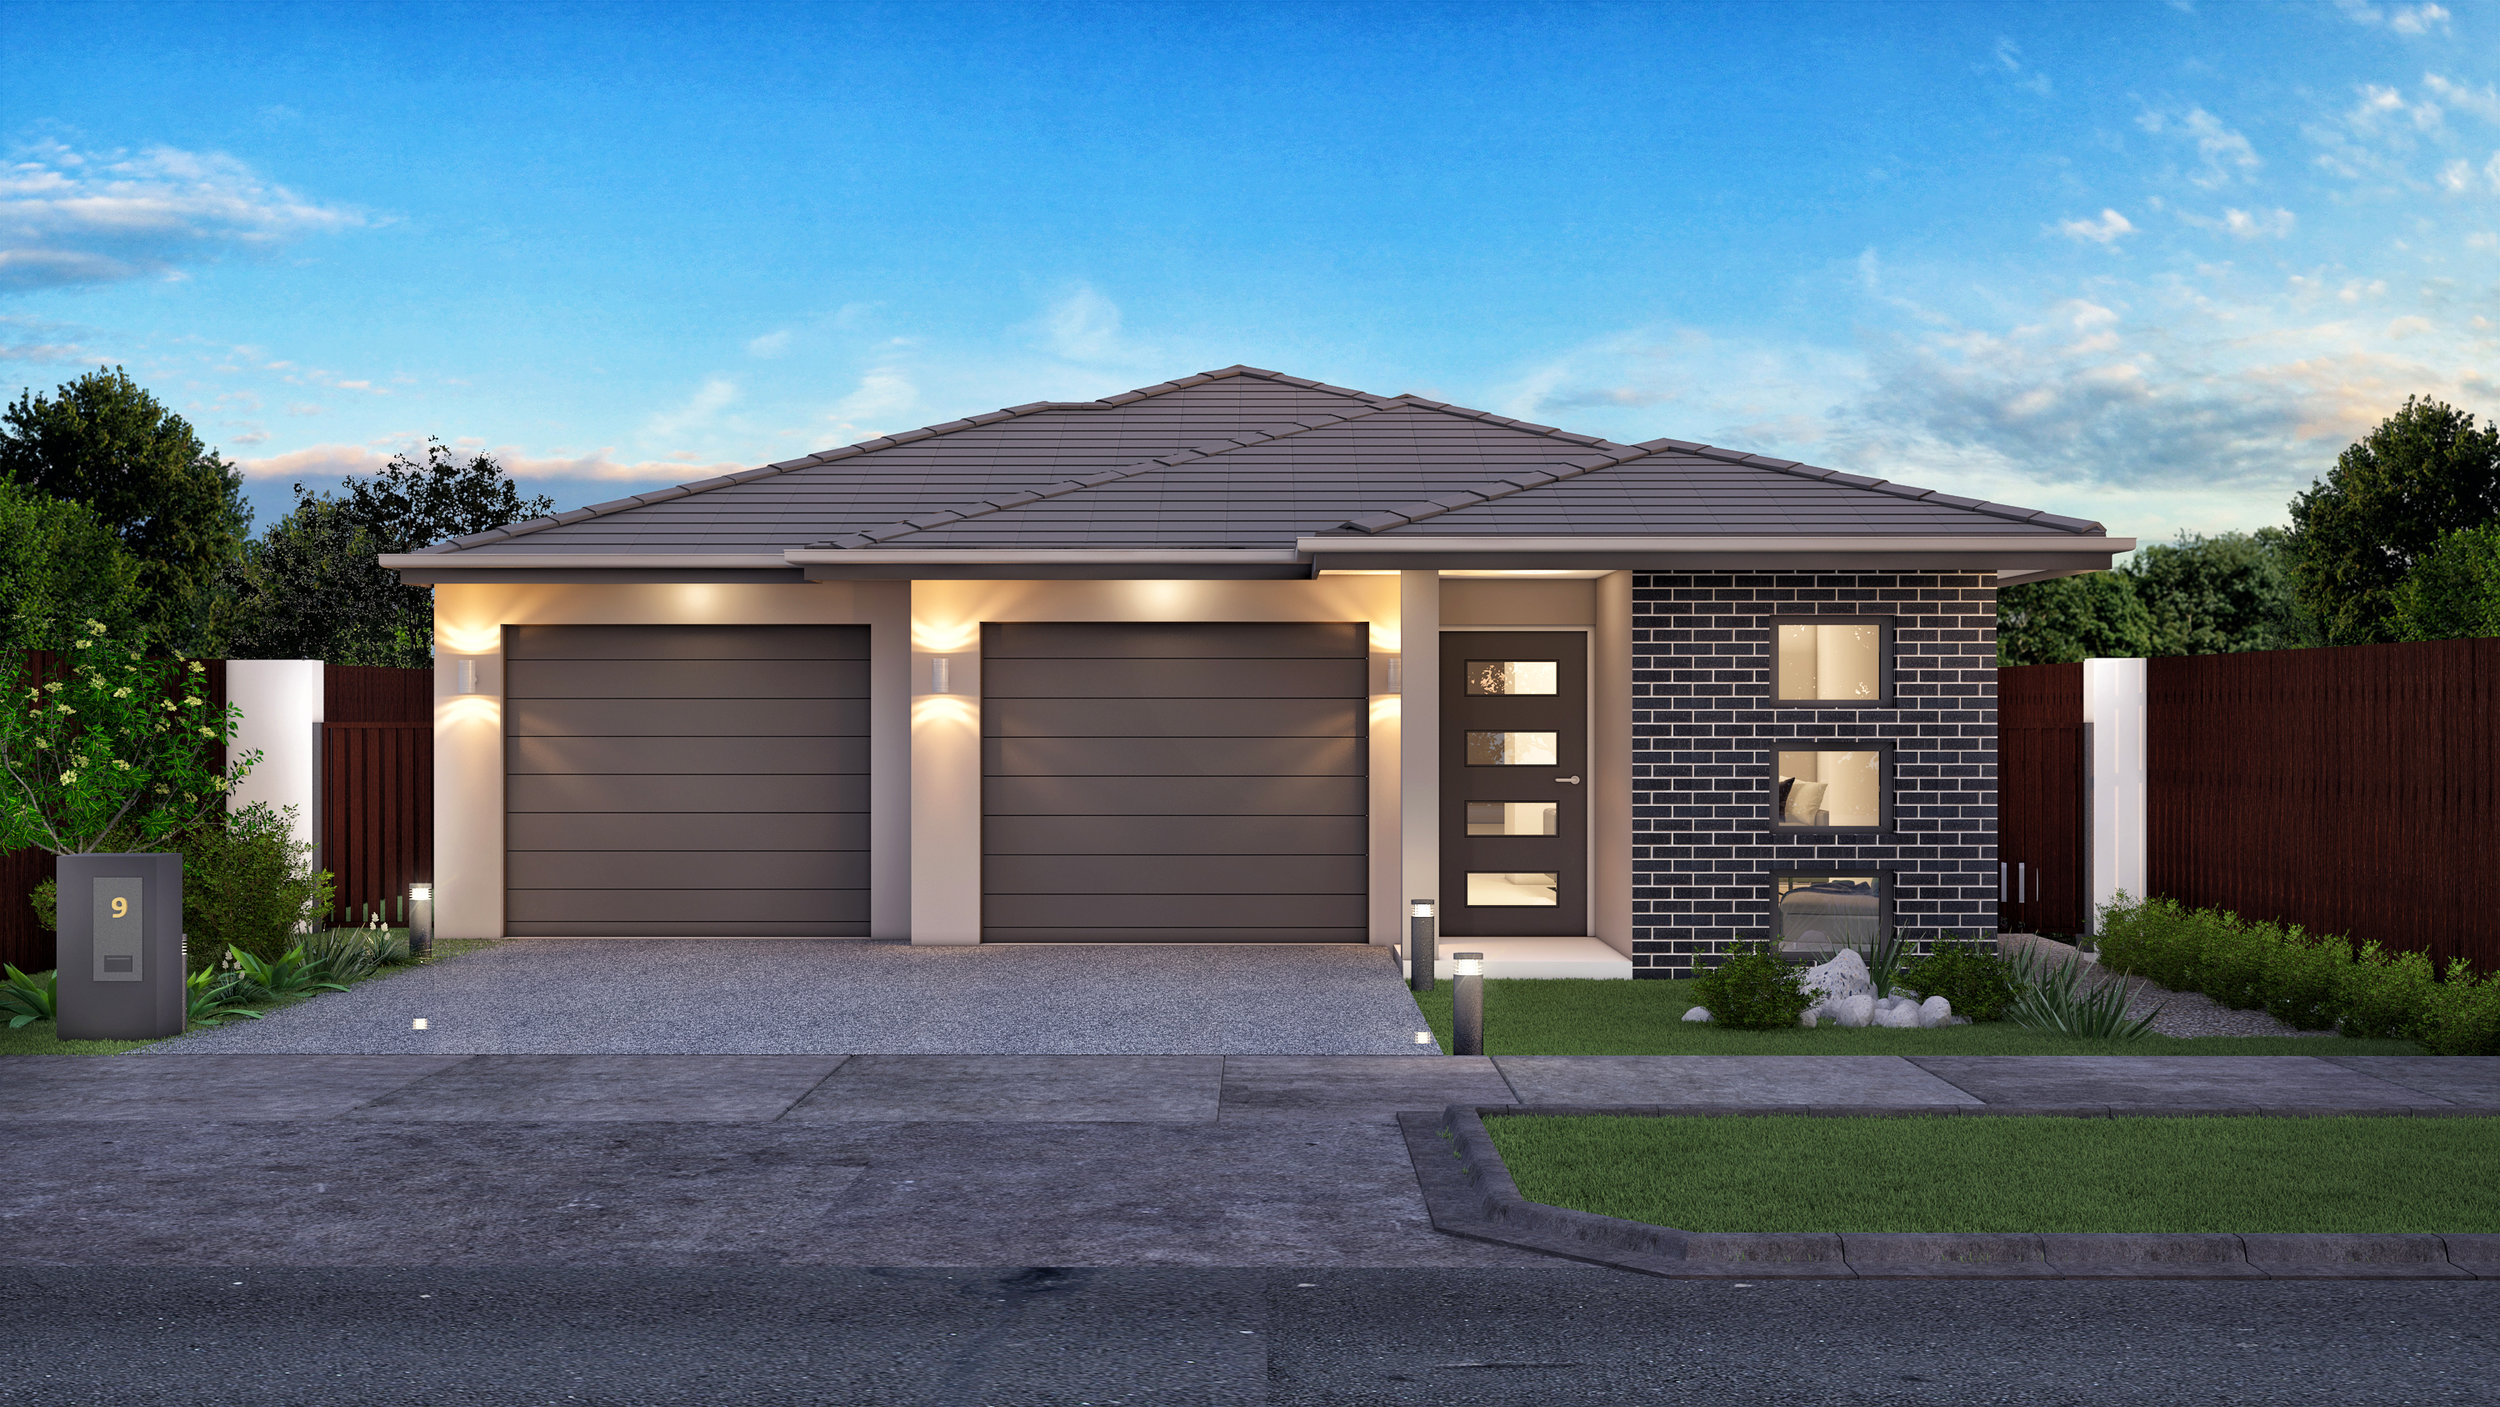 The Citadel - 3 Bed | 2 Bath | 2 Car Garage11m Traditional Lots